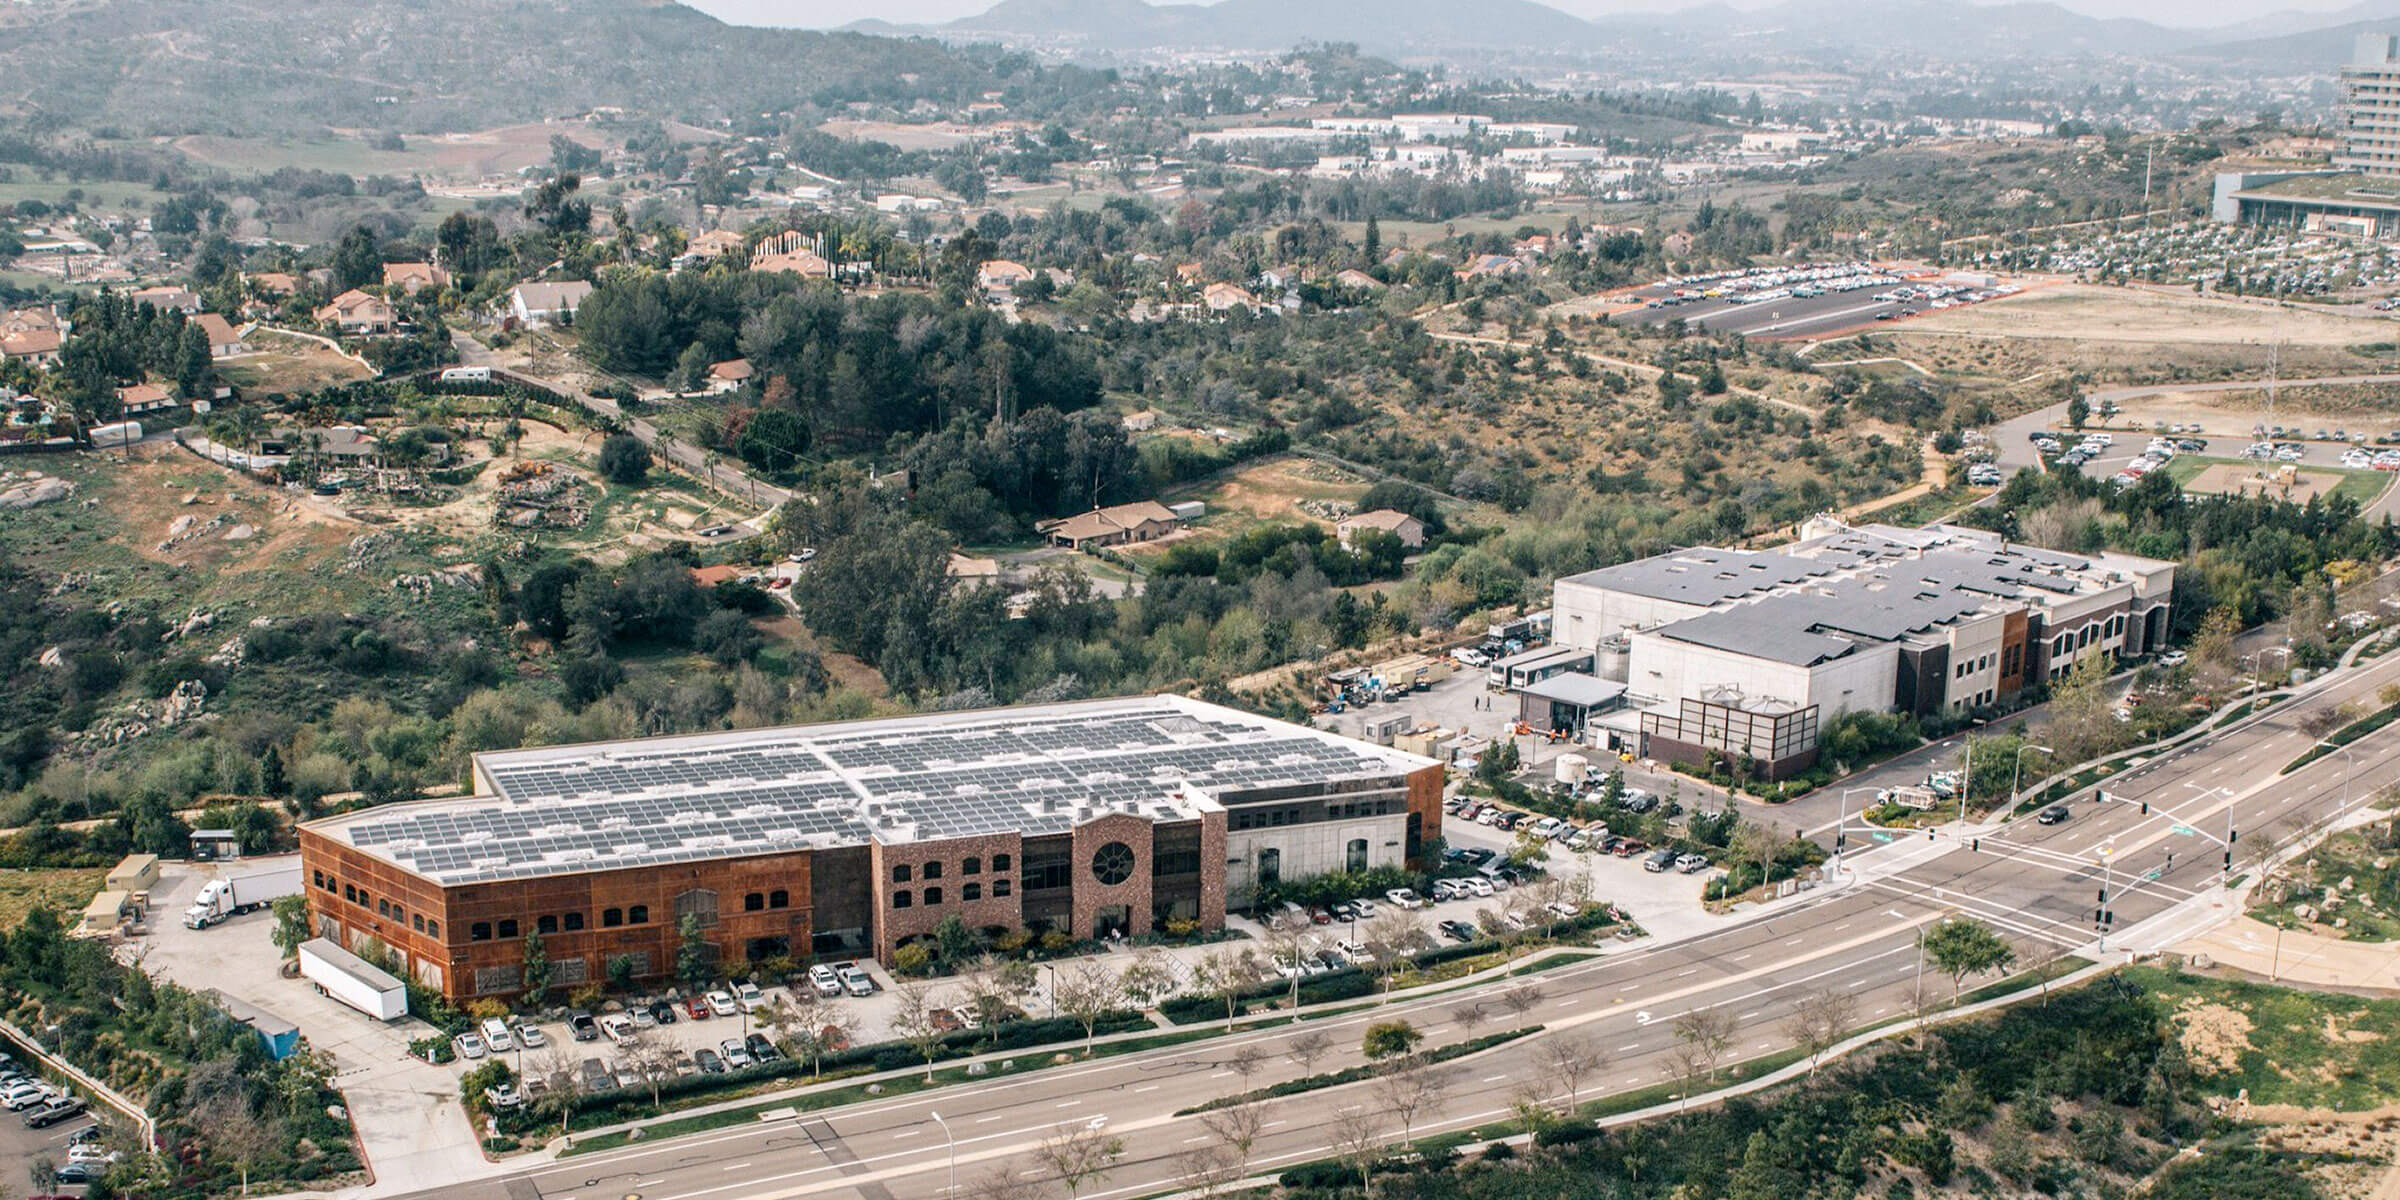 The Stone Brewing production facility complex in Escondido, California